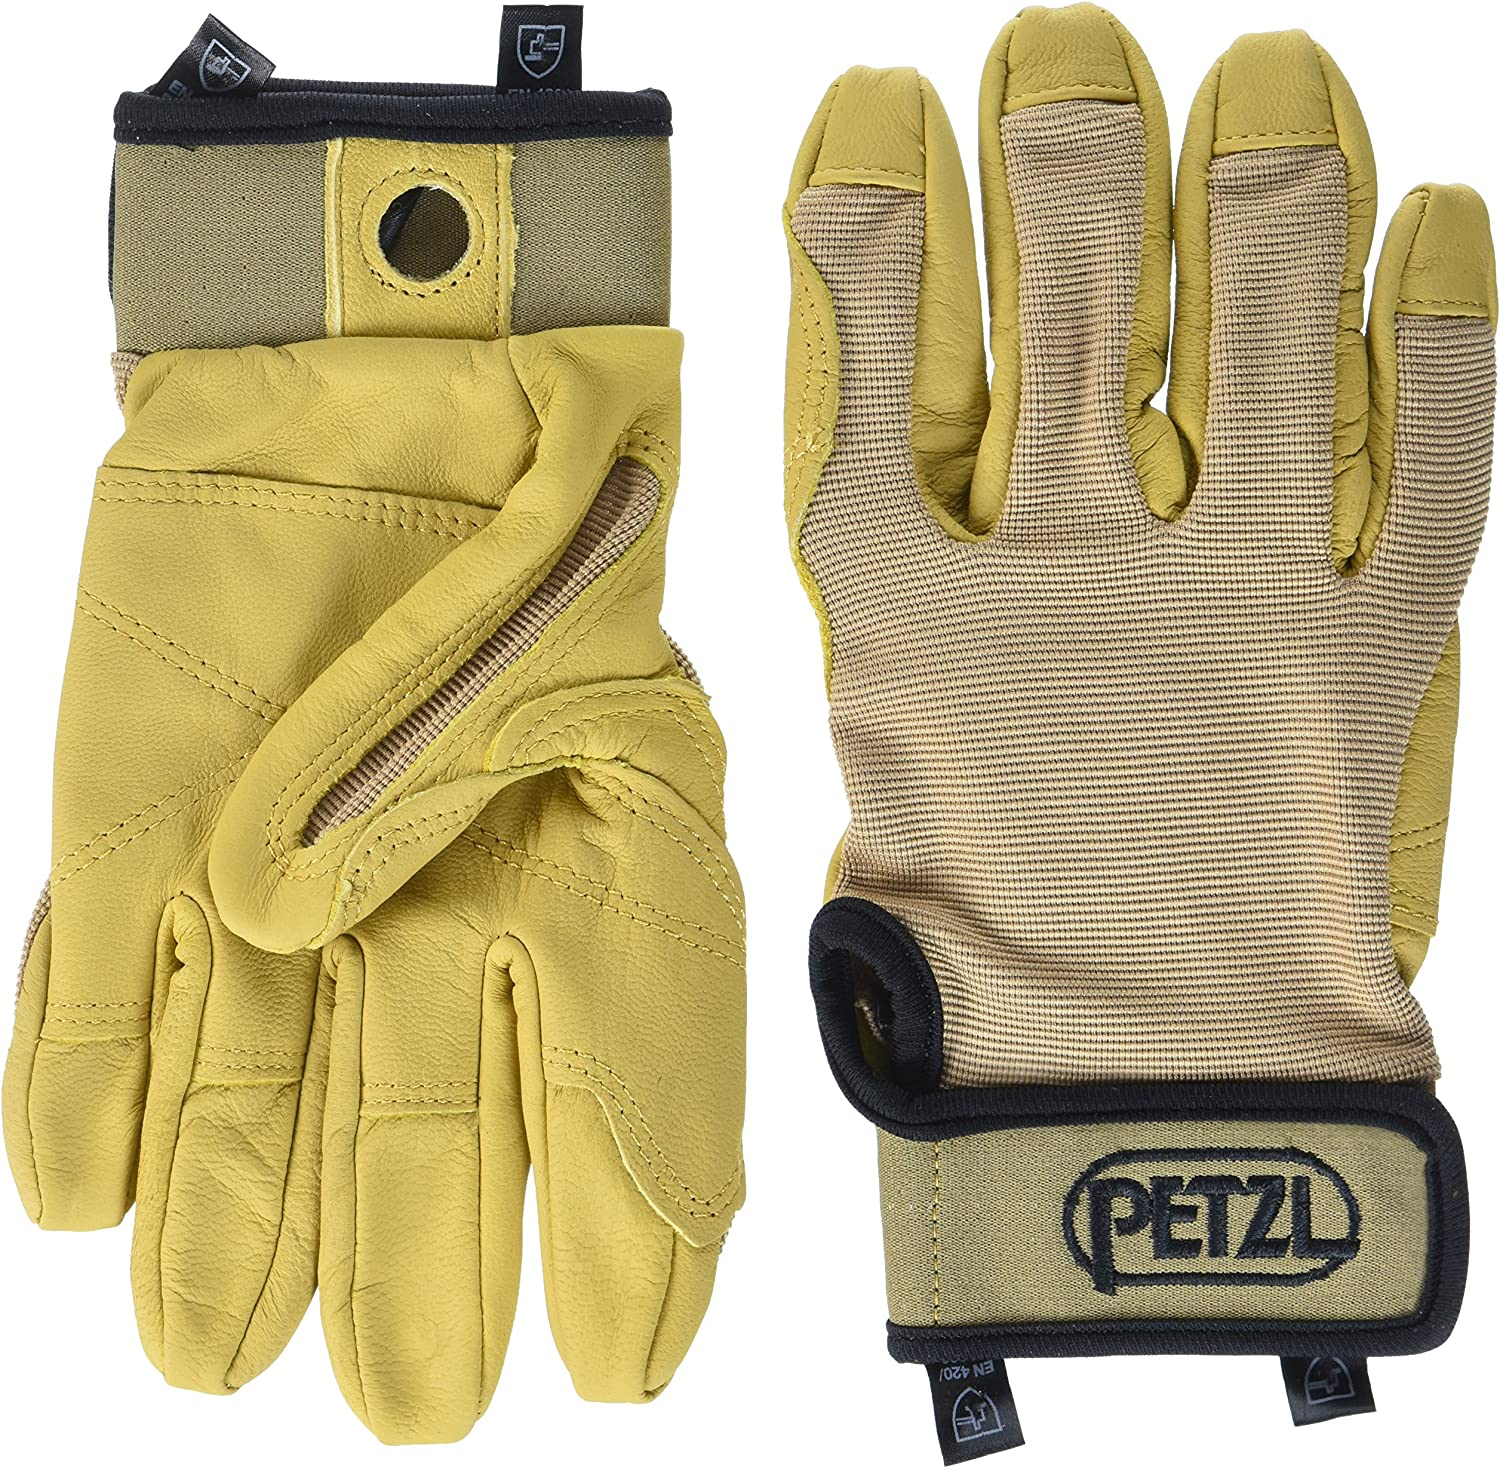 Petzl – CORDEX PLUS Gloves for Climbers